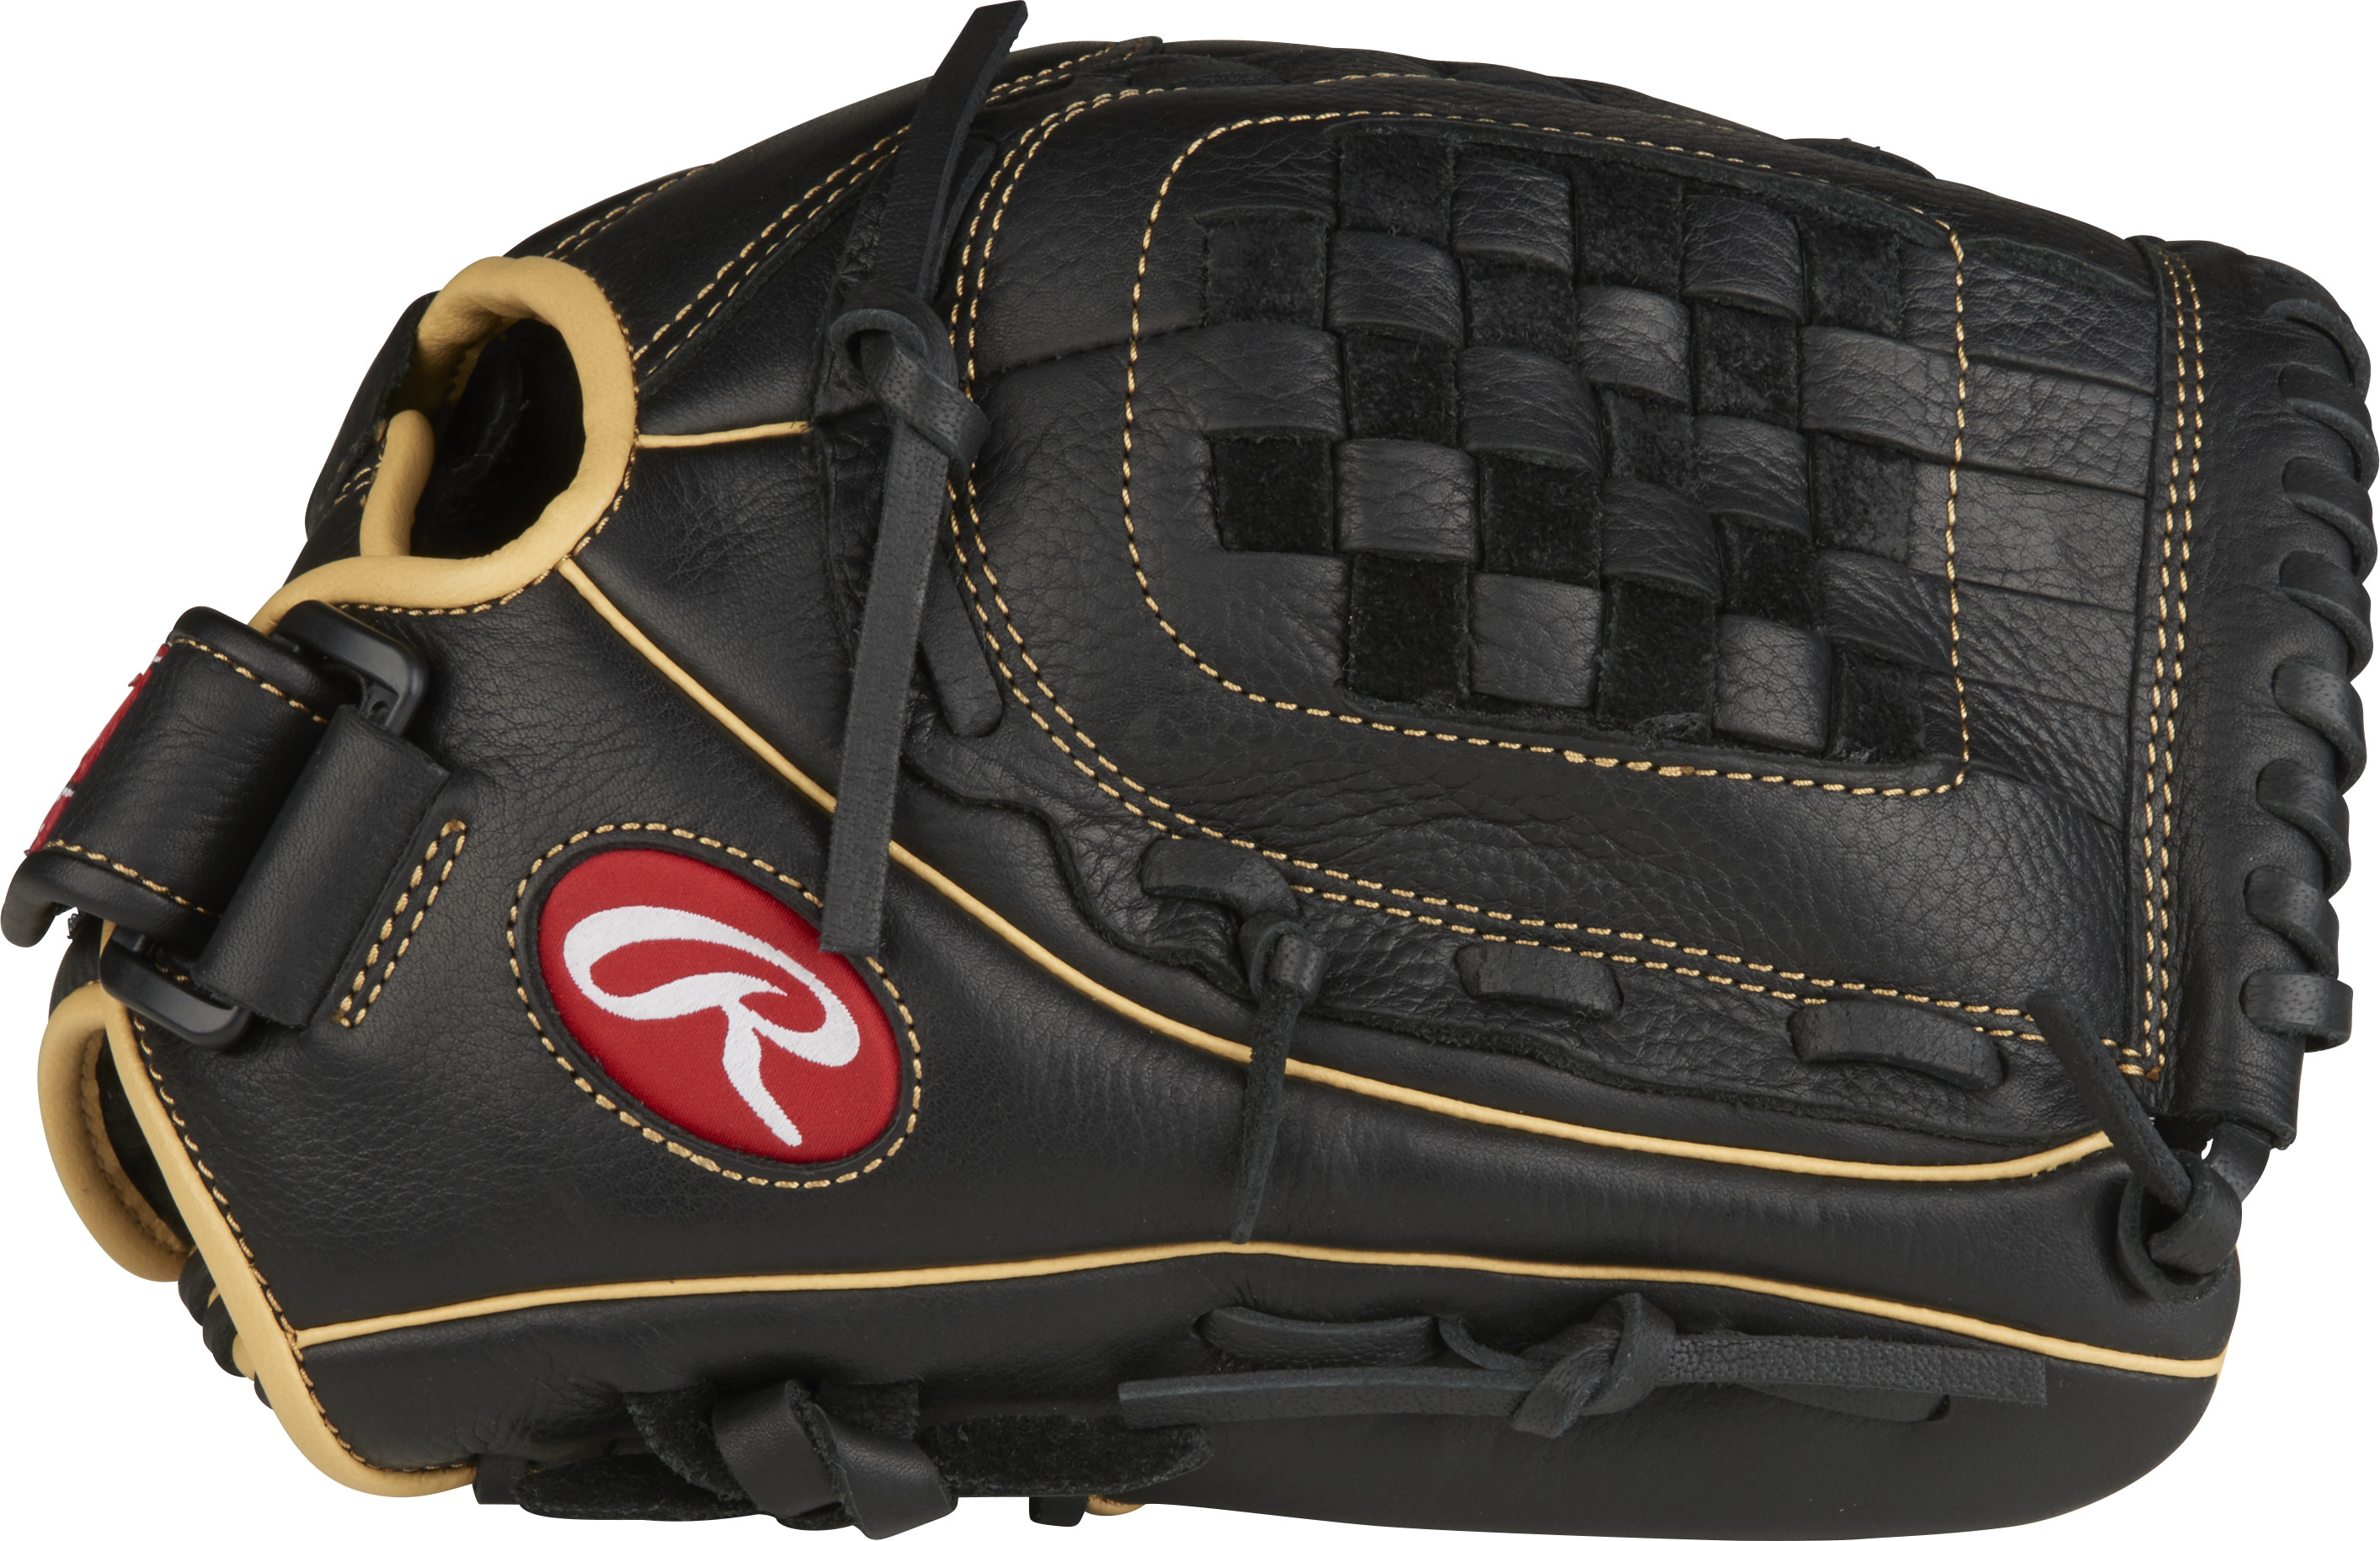 http://www.bestbatdeals.com/images/gloves/rawlings/RSO120BCC-3.jpg